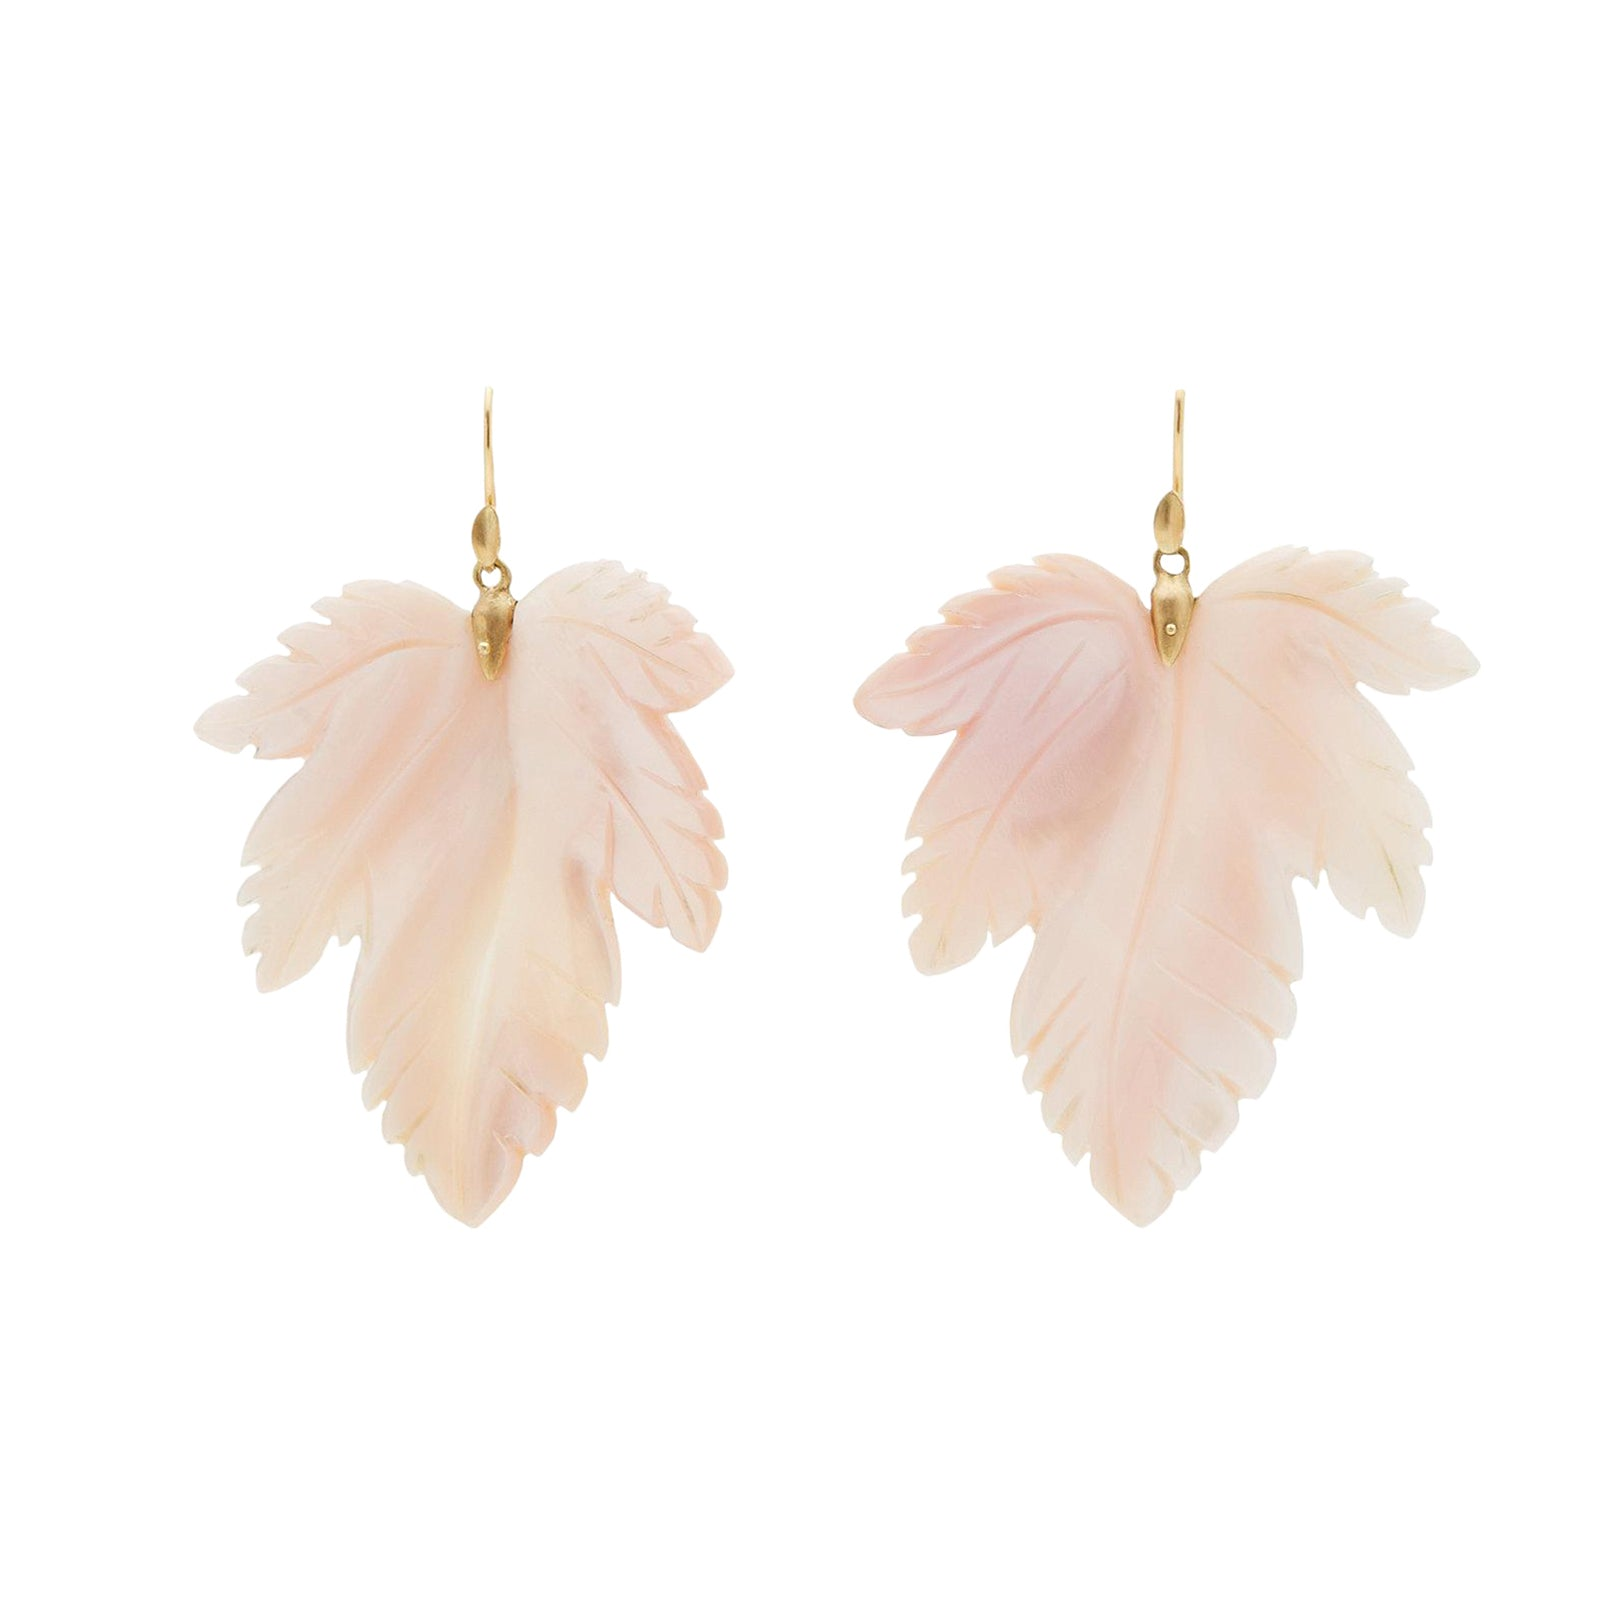 Annette Ferdinandsen Large Mother of Pearl Fancy Leaf Earrings - Earrings - Broken English Jewelry